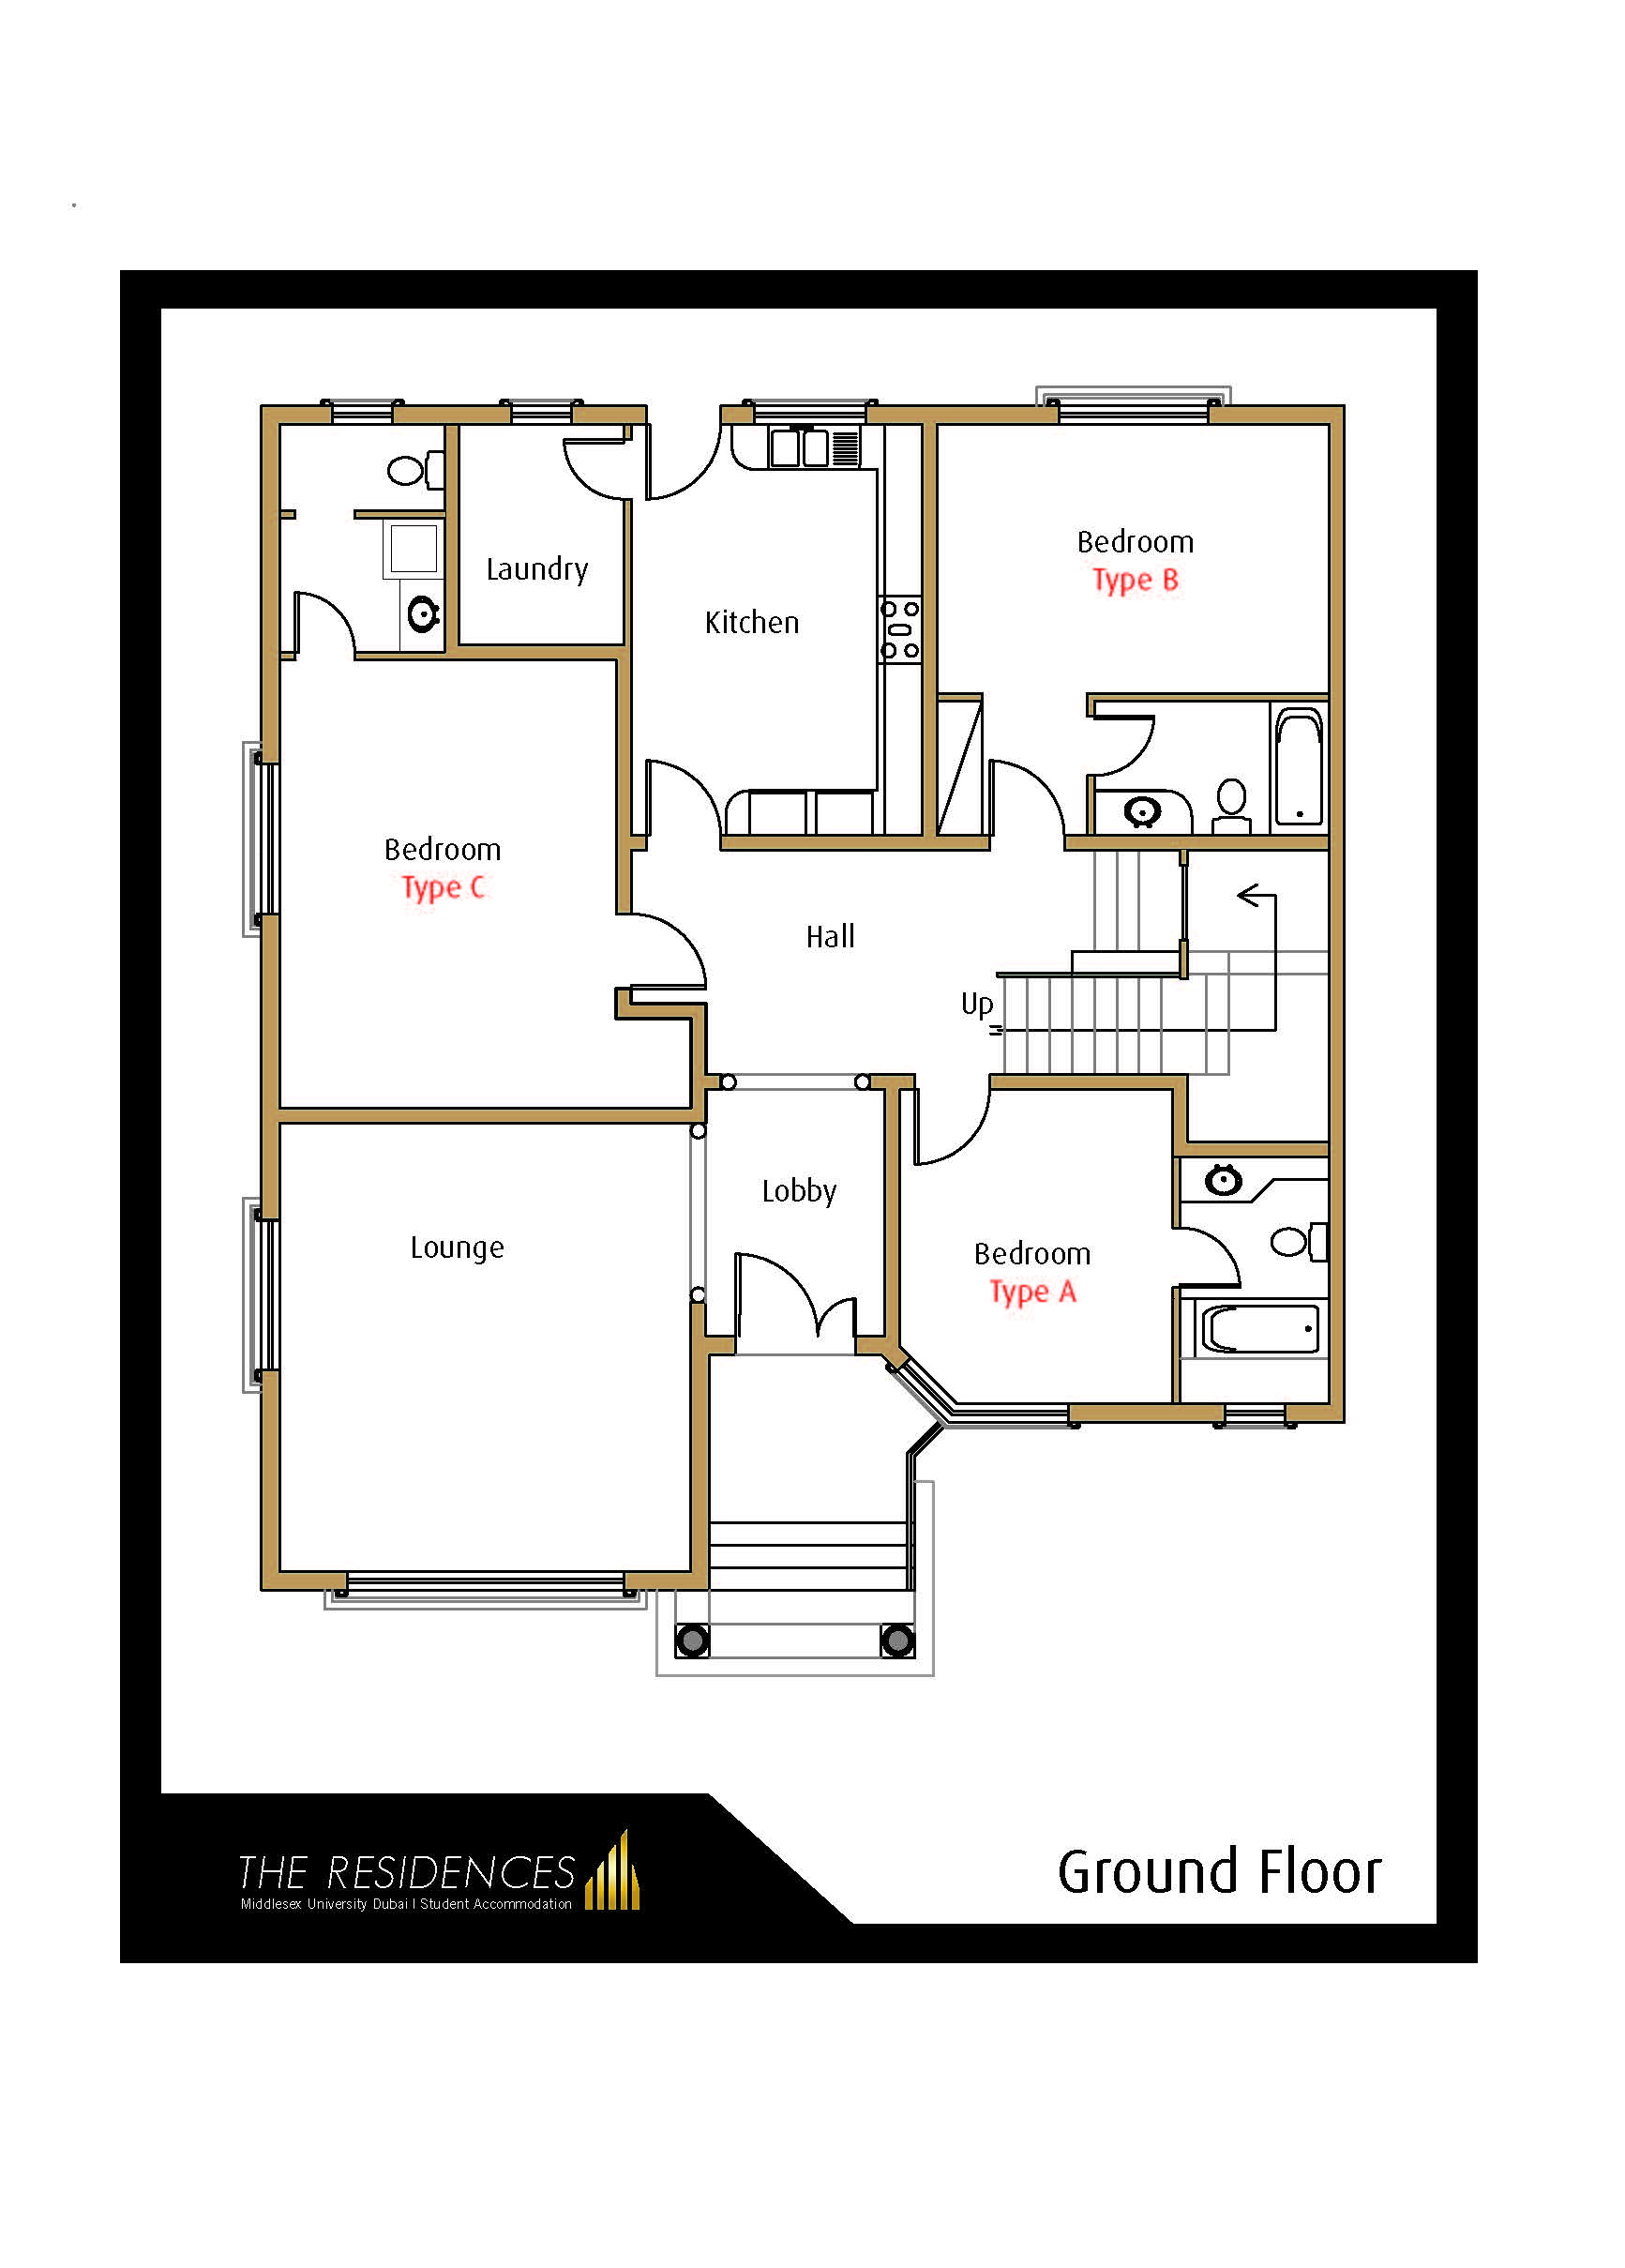 The Residences Ground floor map